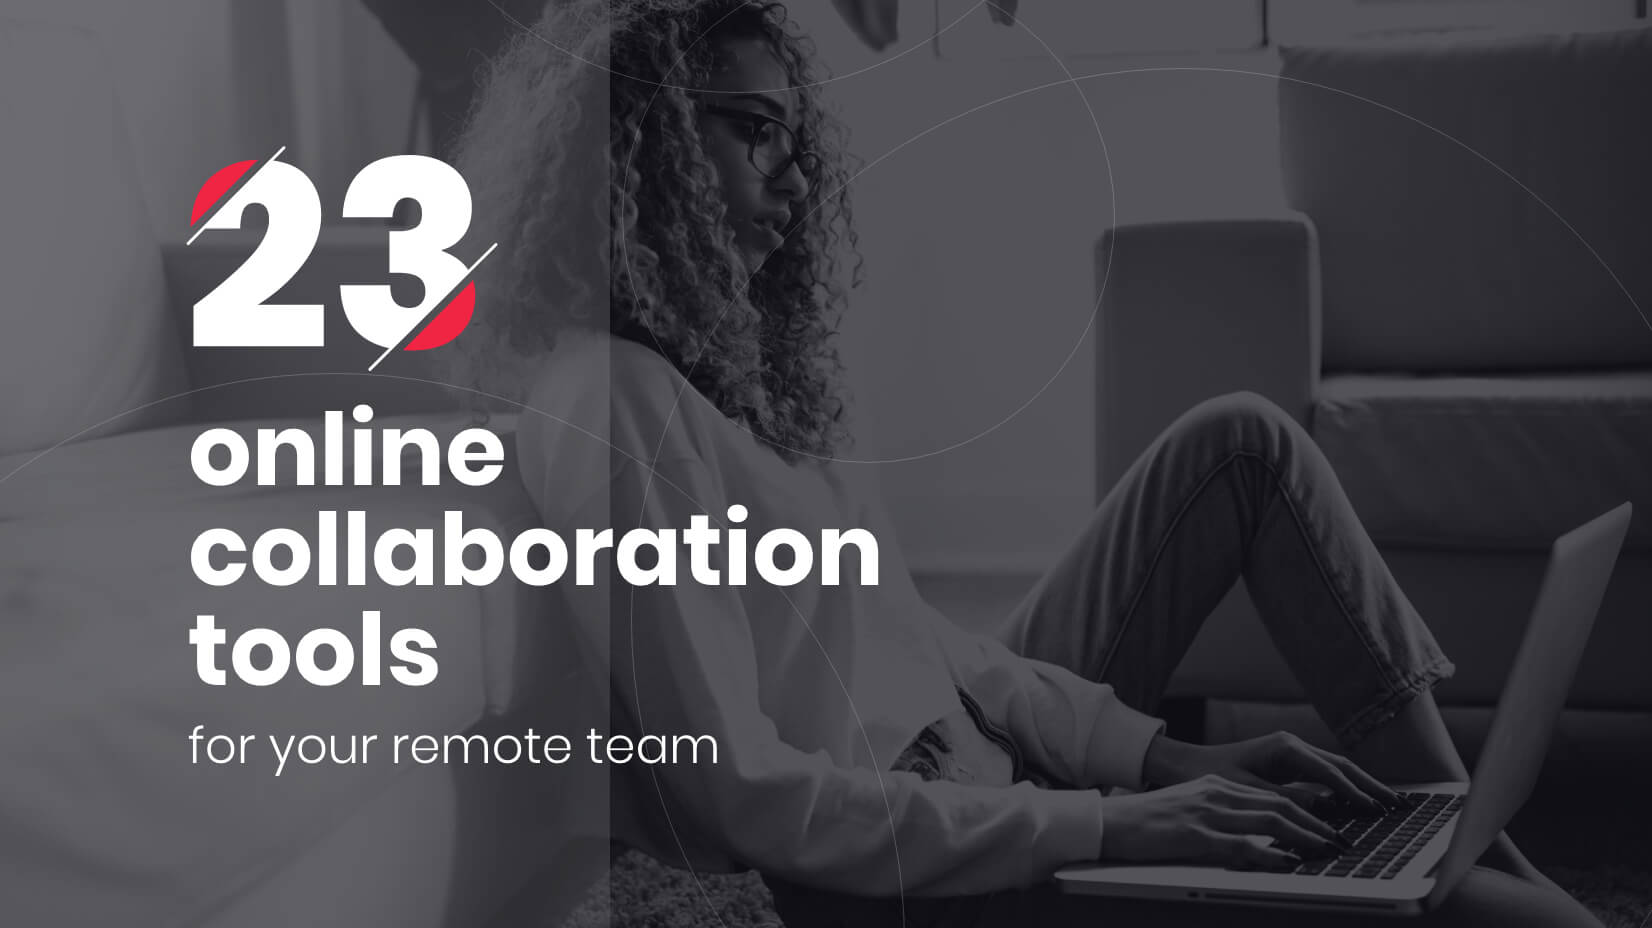 23 online collaboration tools for your remote team